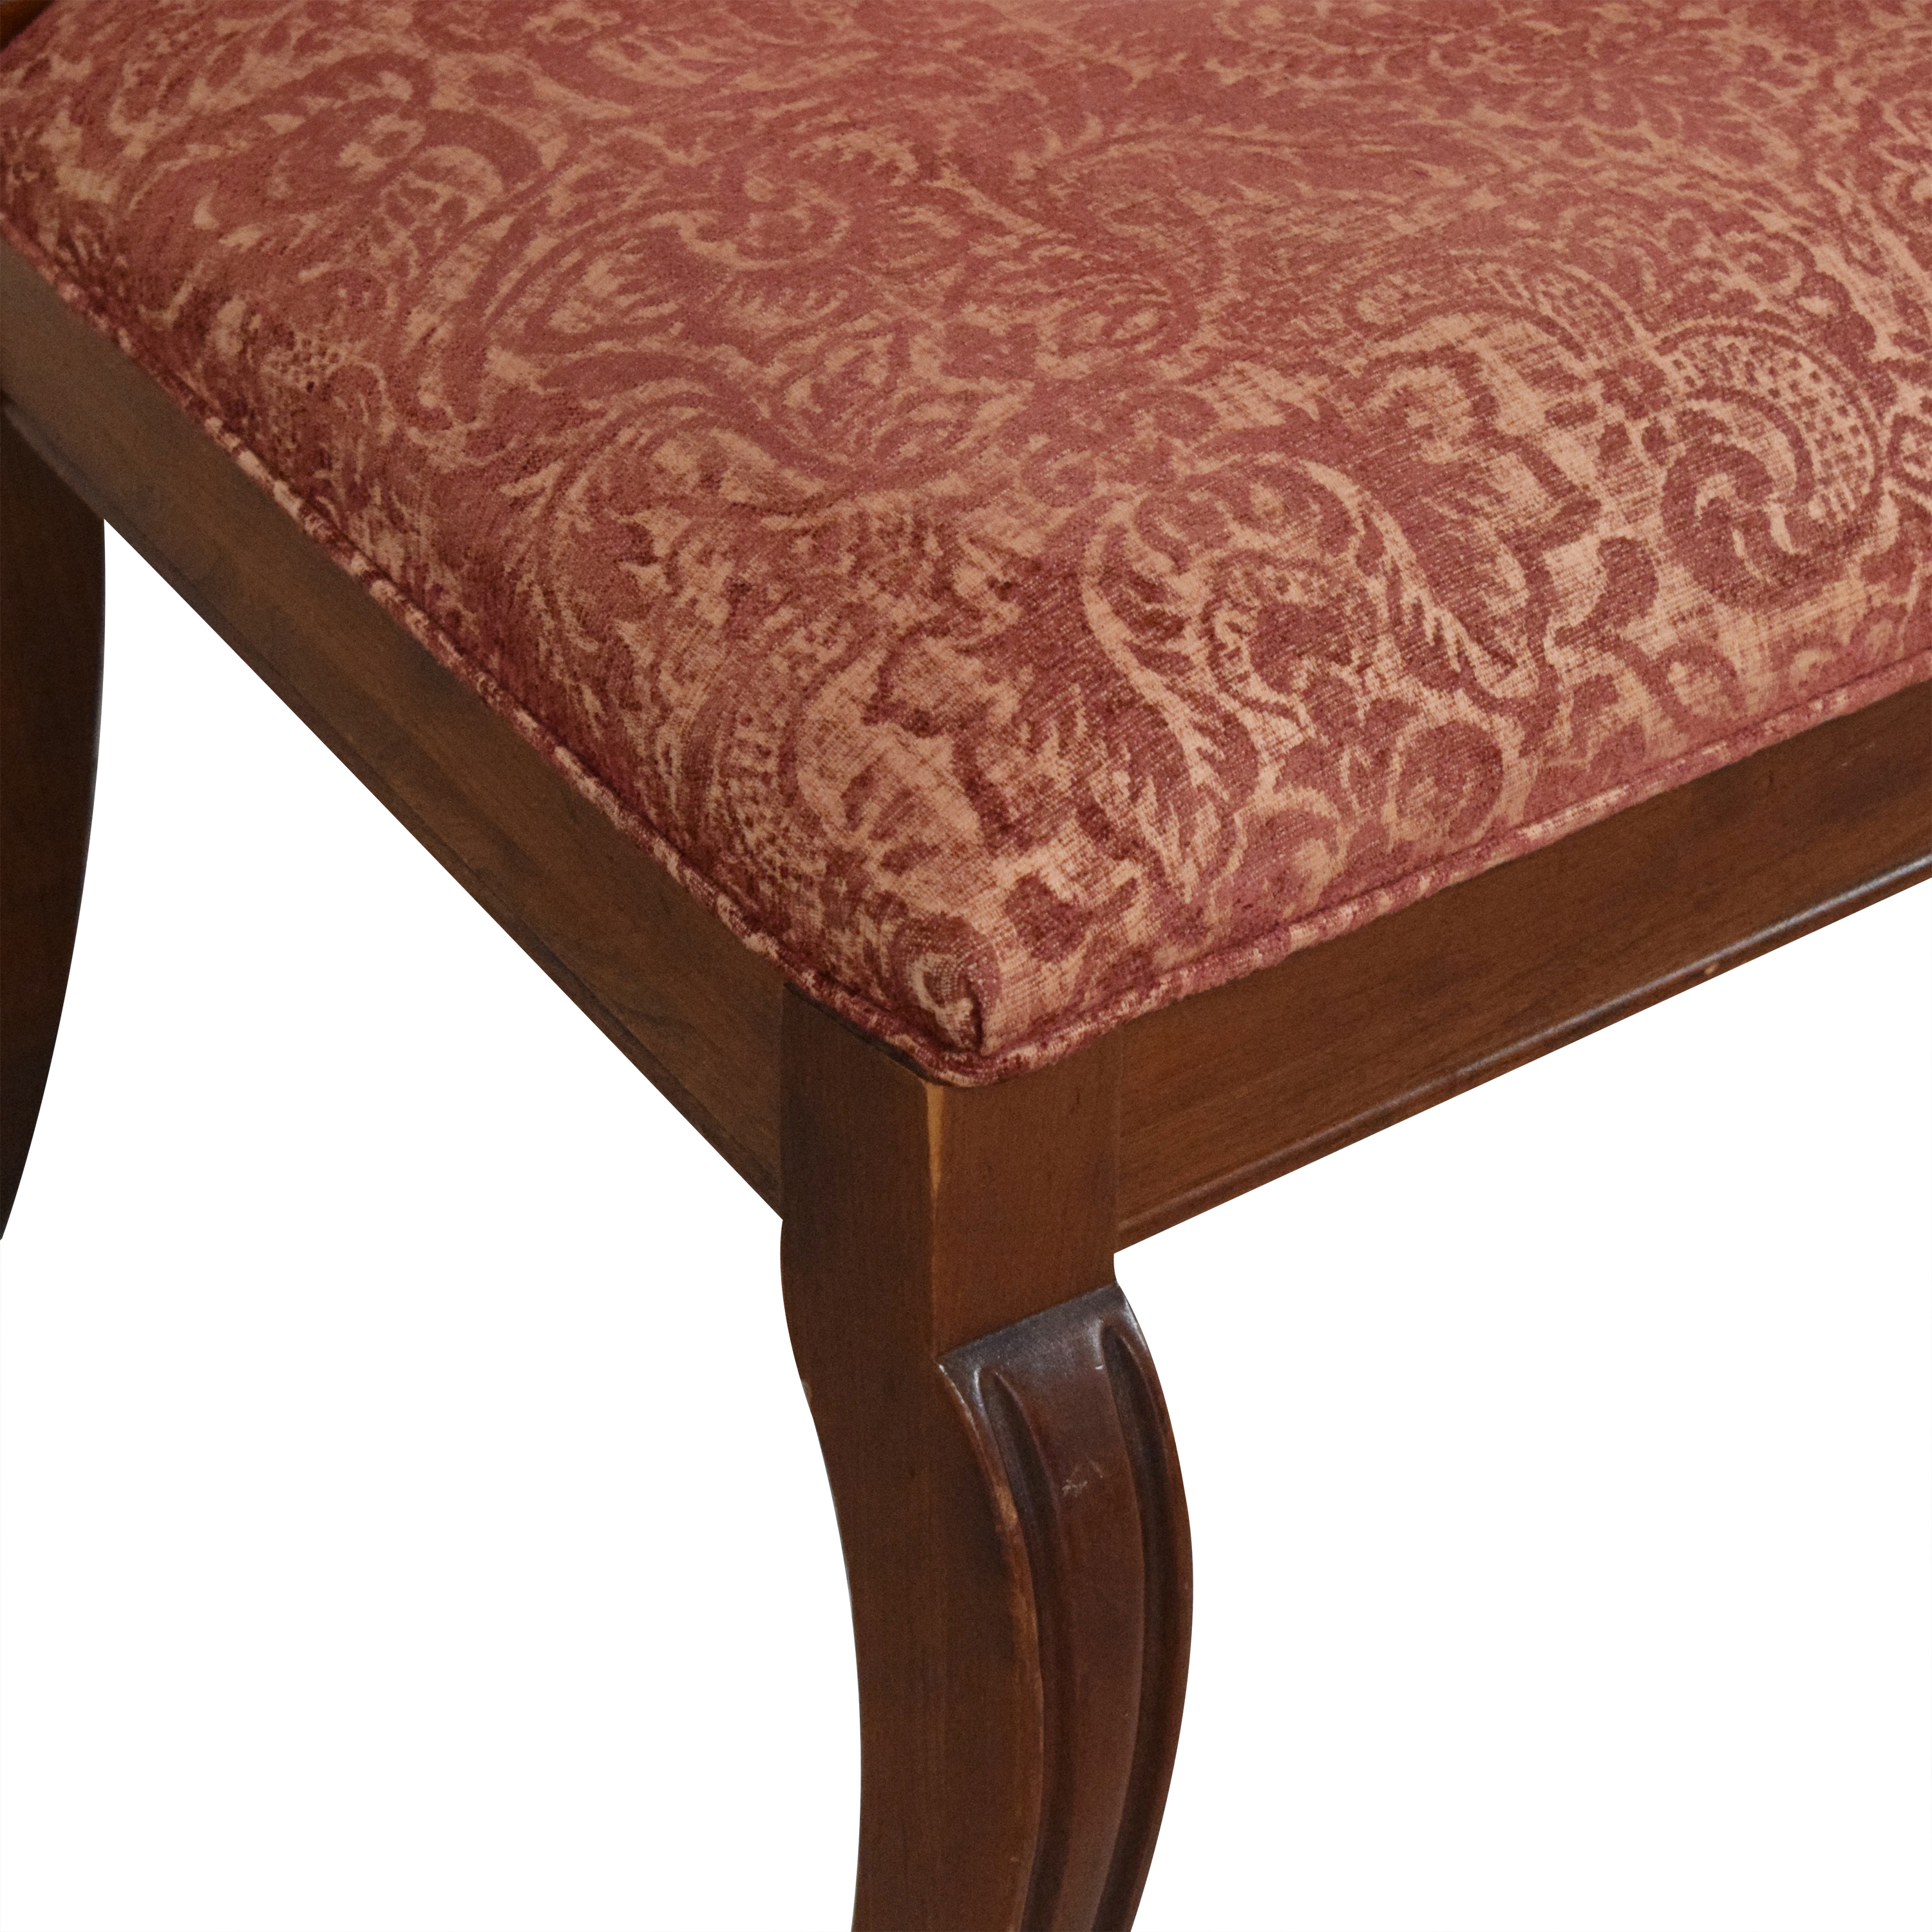 Ethan Allen Ethan Allen Upholstered Dining Side Chairs price